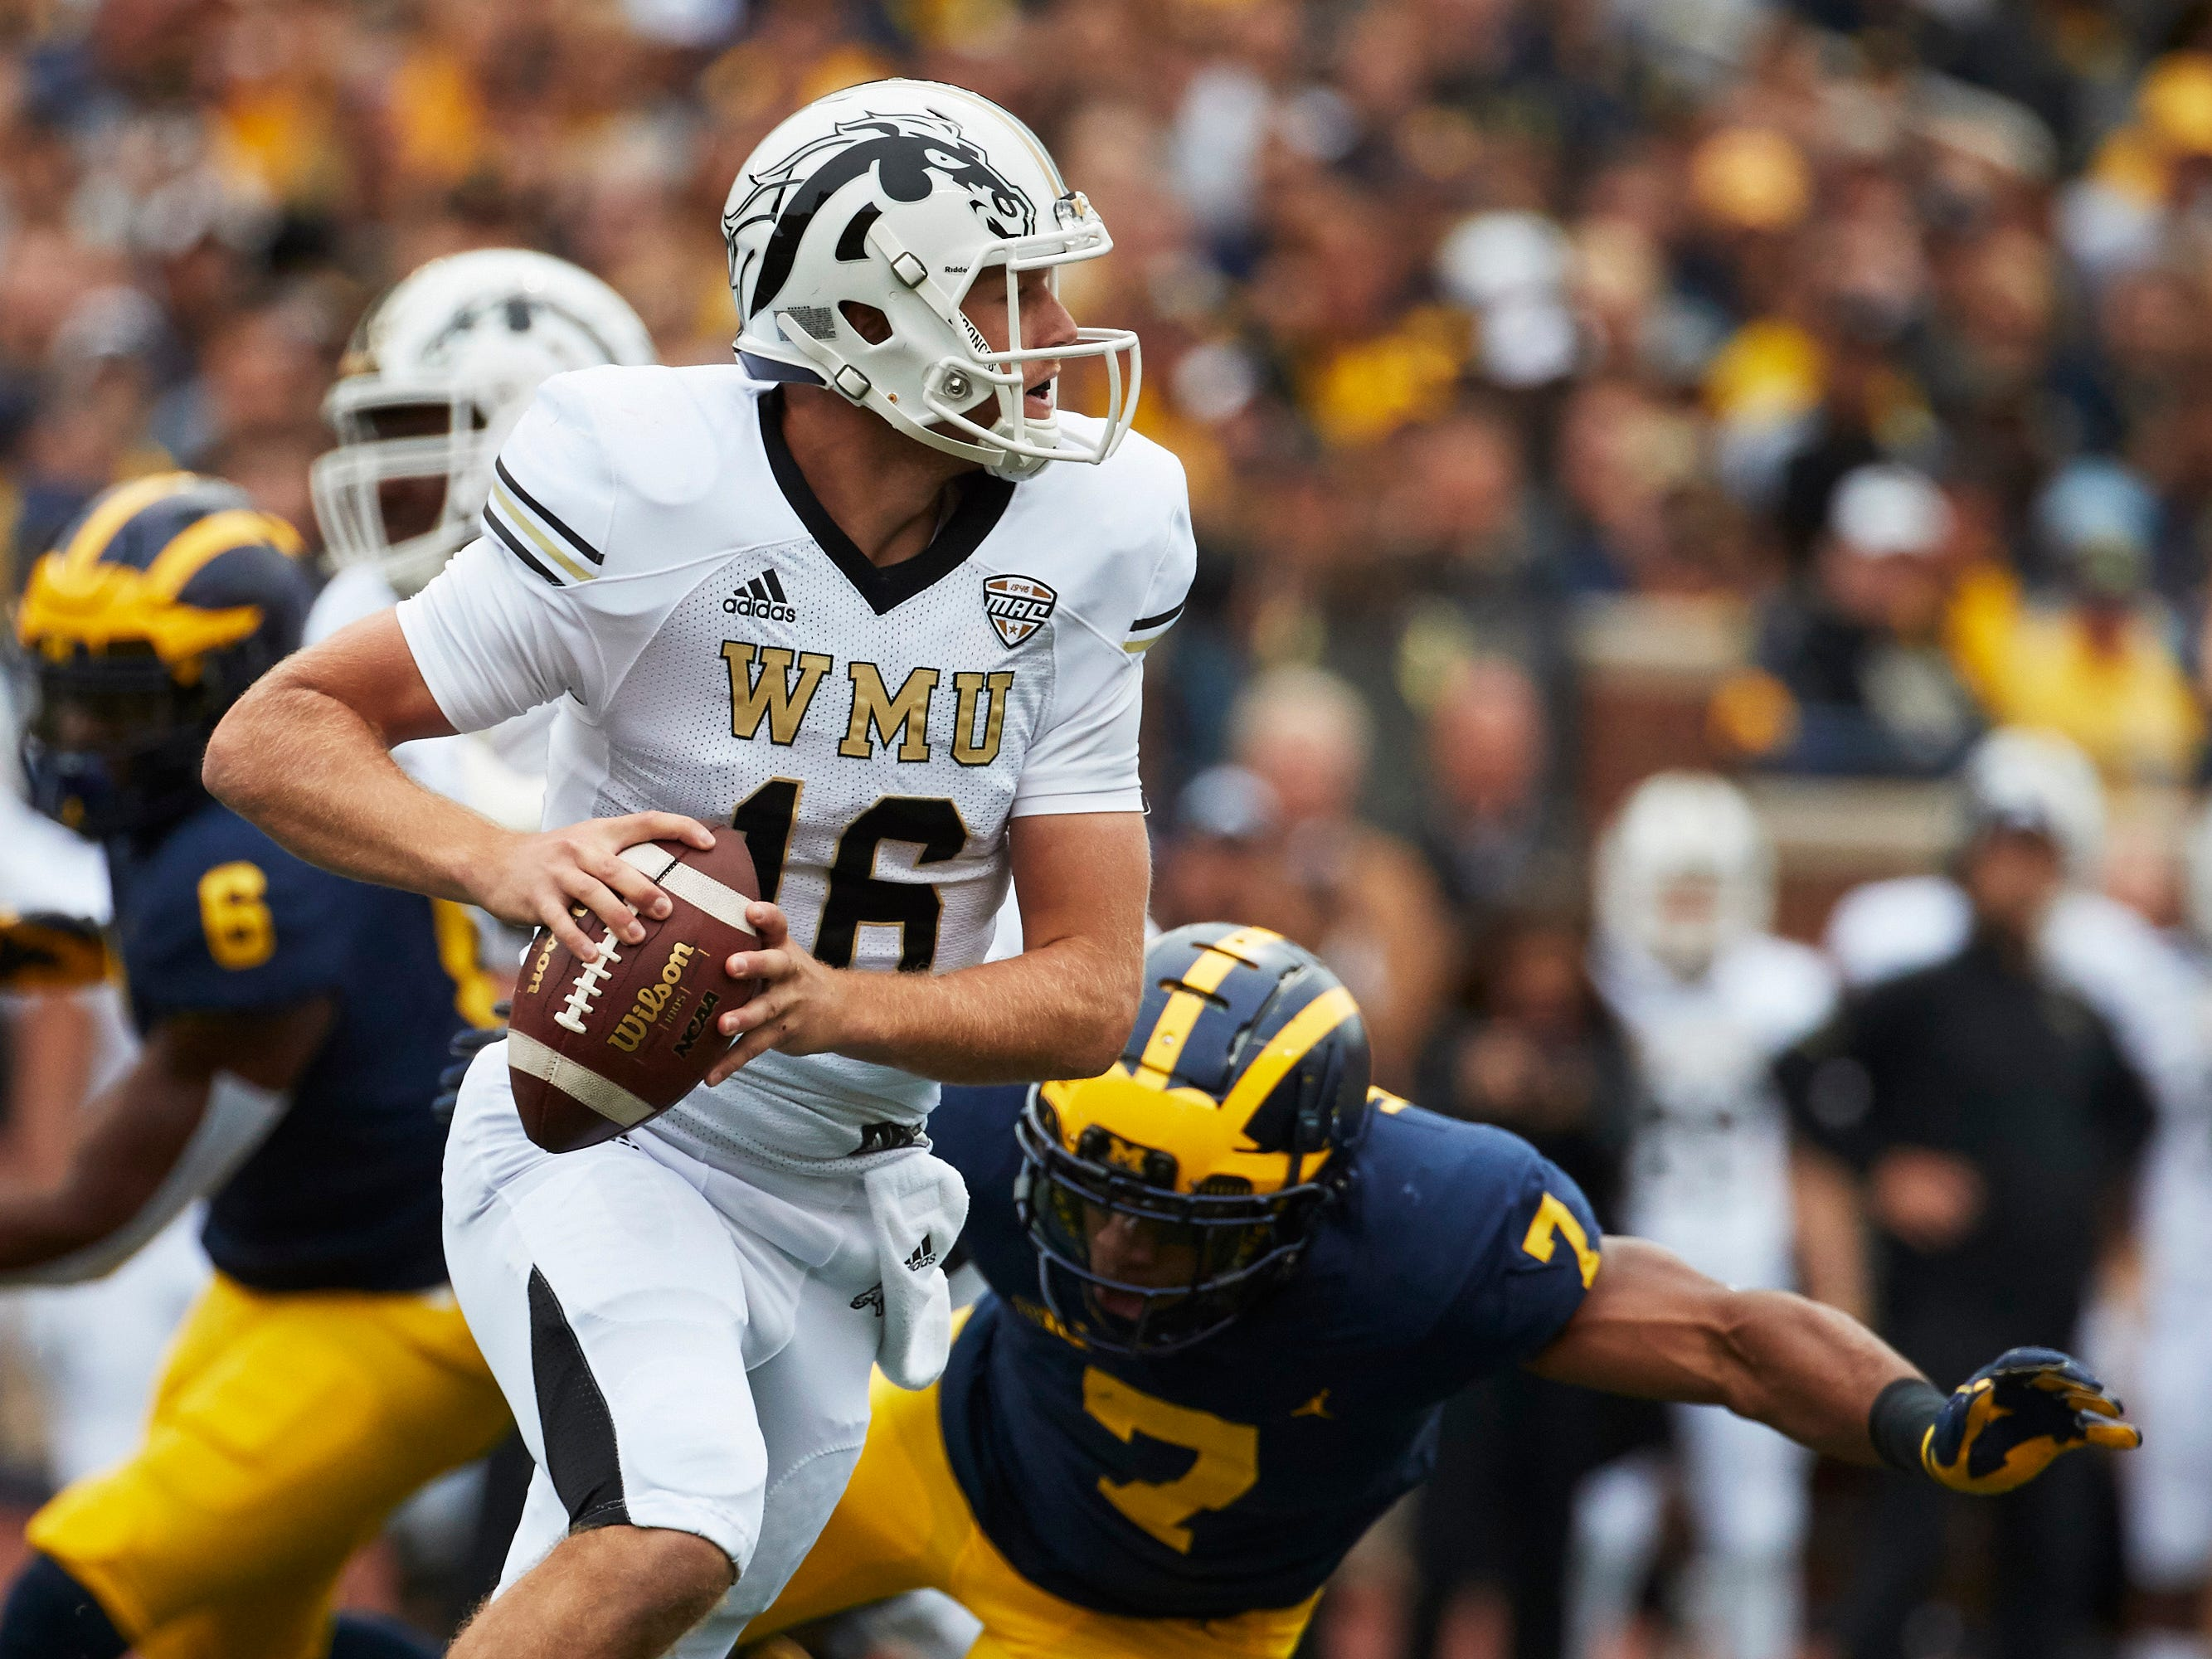 Western Michigan Broncos quarterback Jon Wassink (16) scrambles on Michigan Wolverines linebacker Khaleke Hudson (7) in the first half at Michigan Stadium.